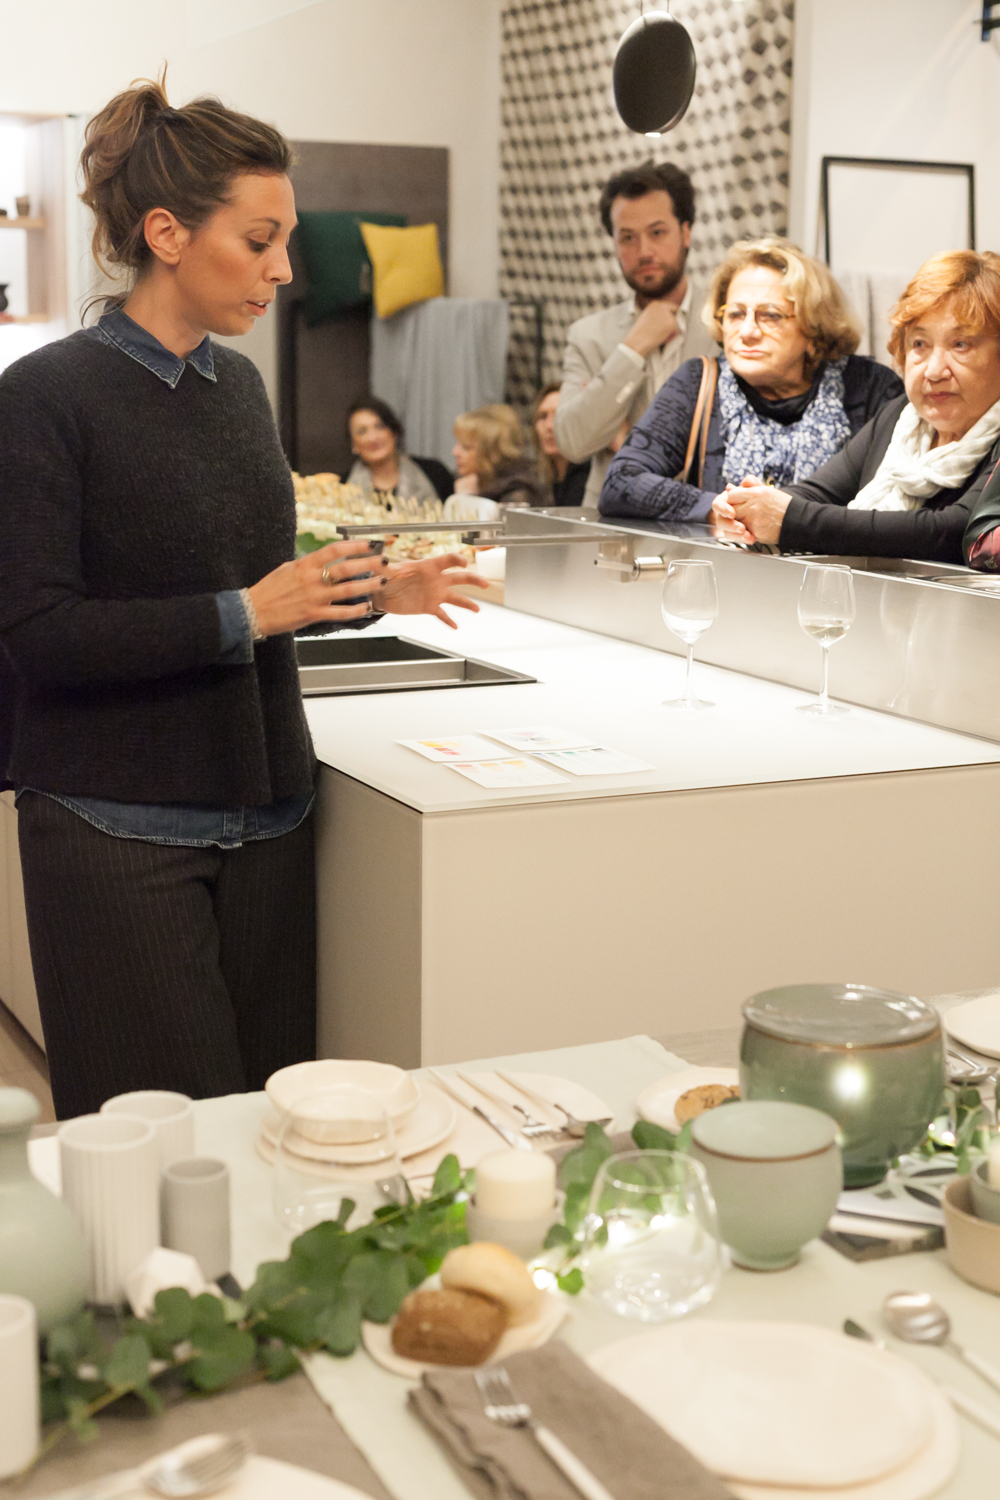 SET THE TABLE STYLING EVENTO SPAZIO MATERIAE NAPOLI FORME DI FARINA TAVOLA NATALE PHOTO (14 di 16).jpg